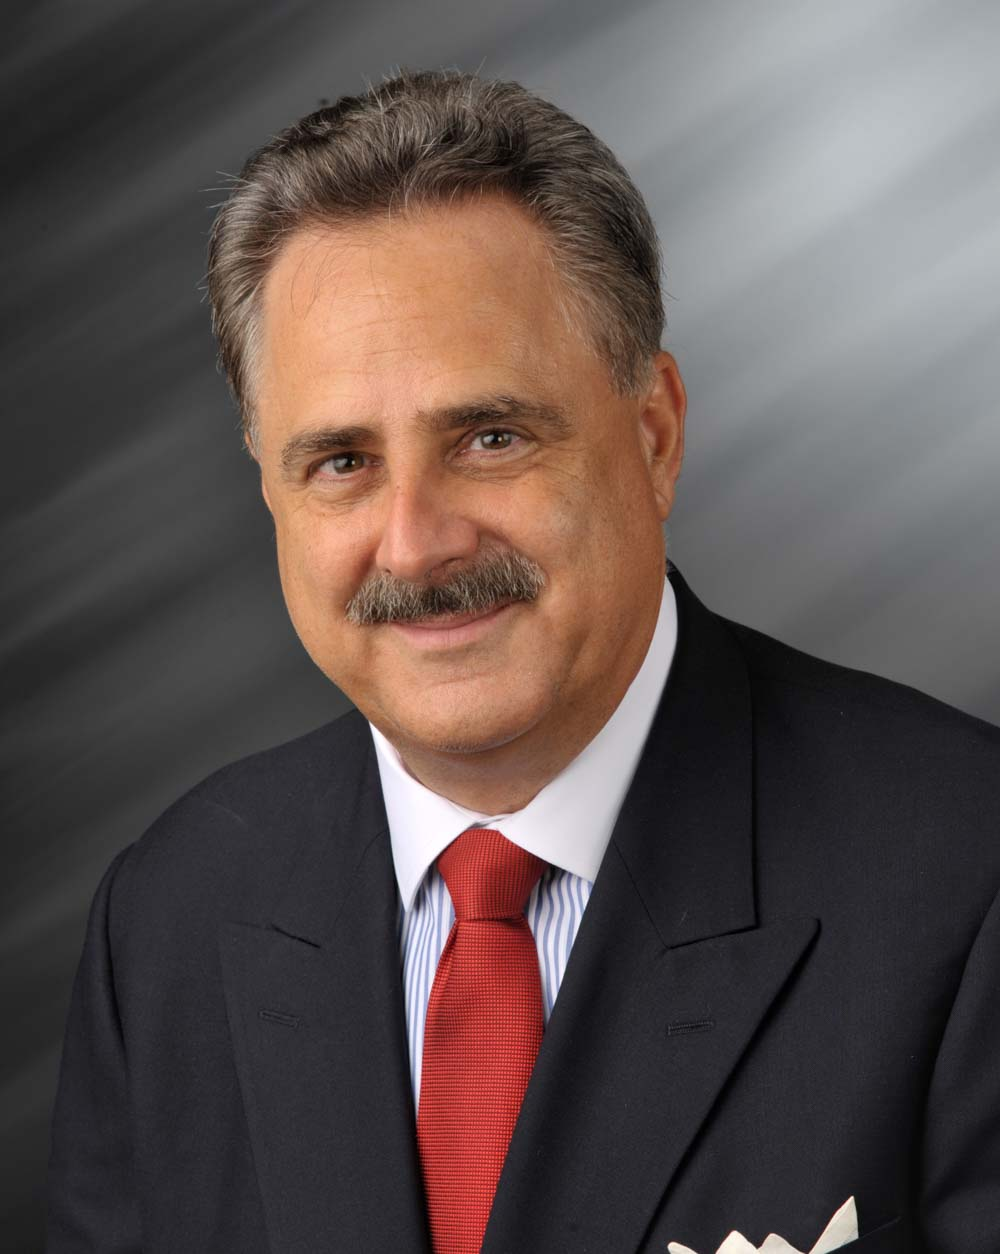 John J. Milaski. Broker Associate with Miloff Aubuchon Realty Group, Inc.